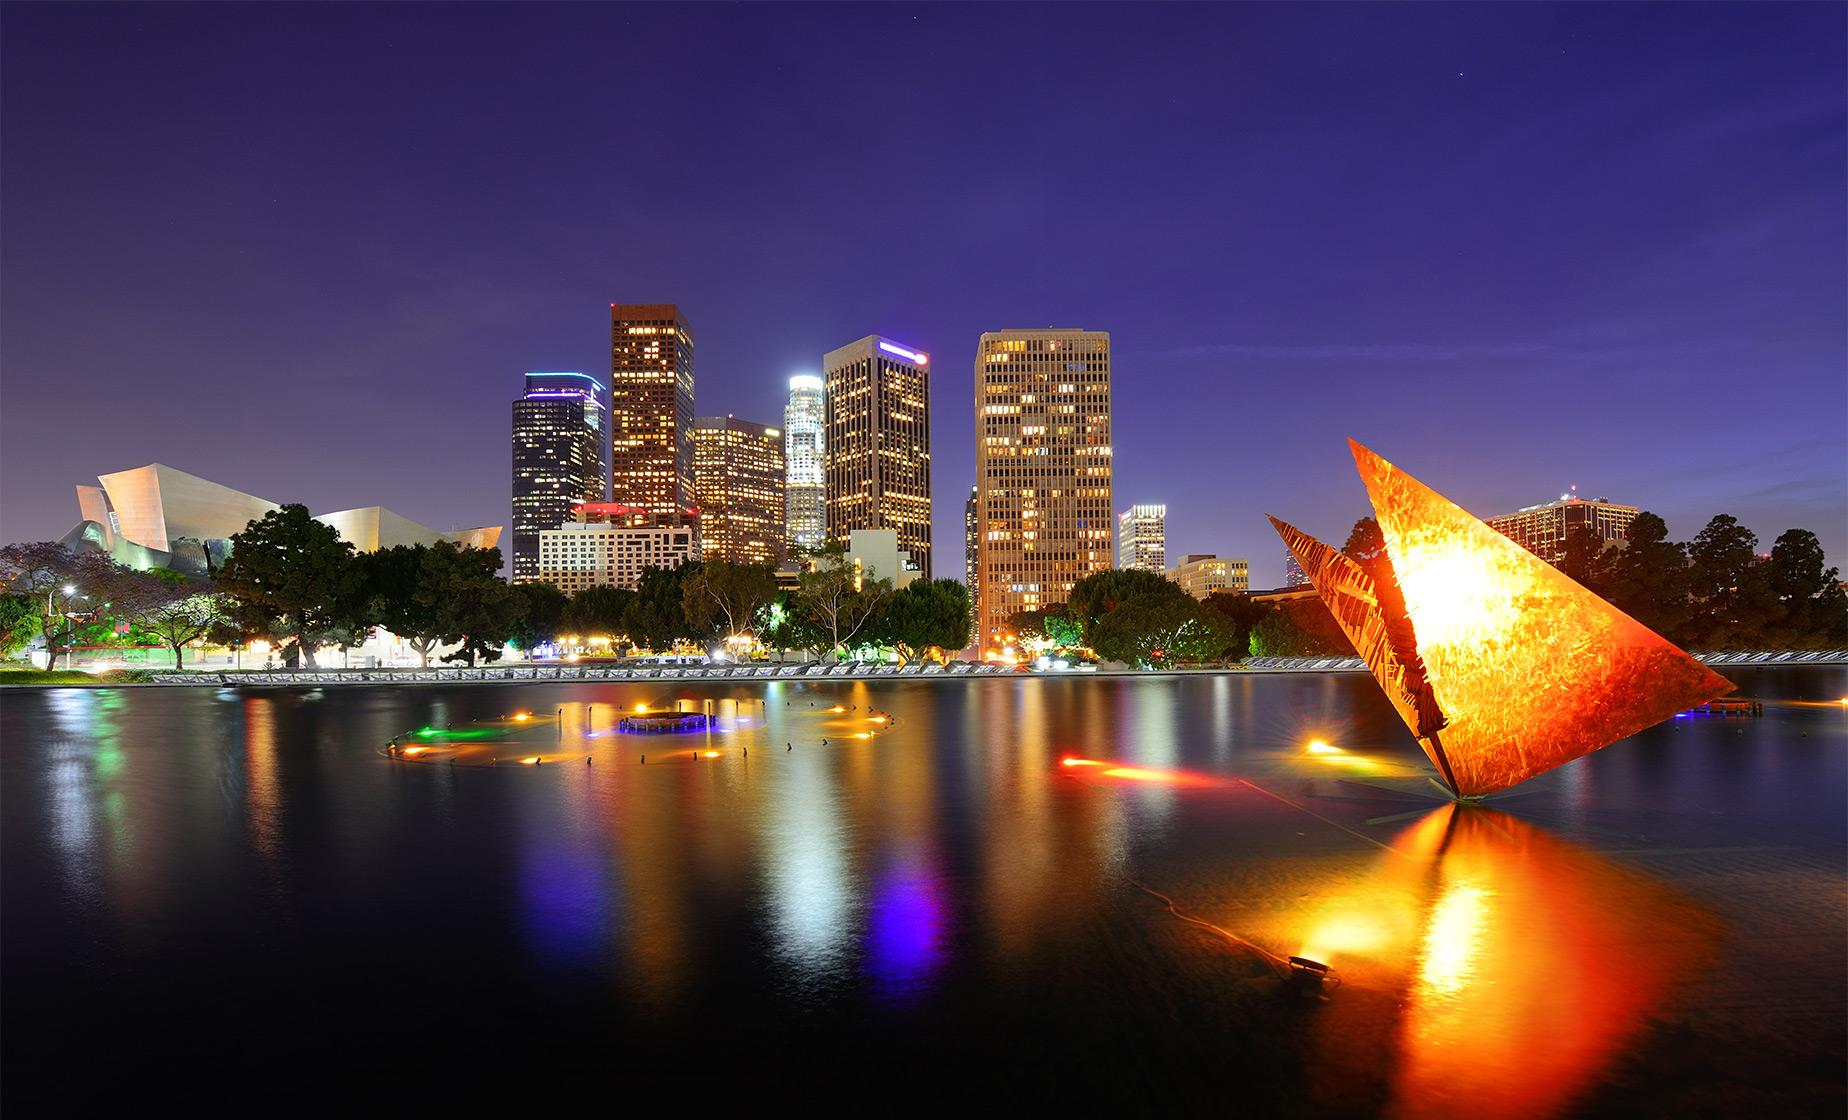 Night Helicopter Sightseeing Tour Cruise Excursion In Los